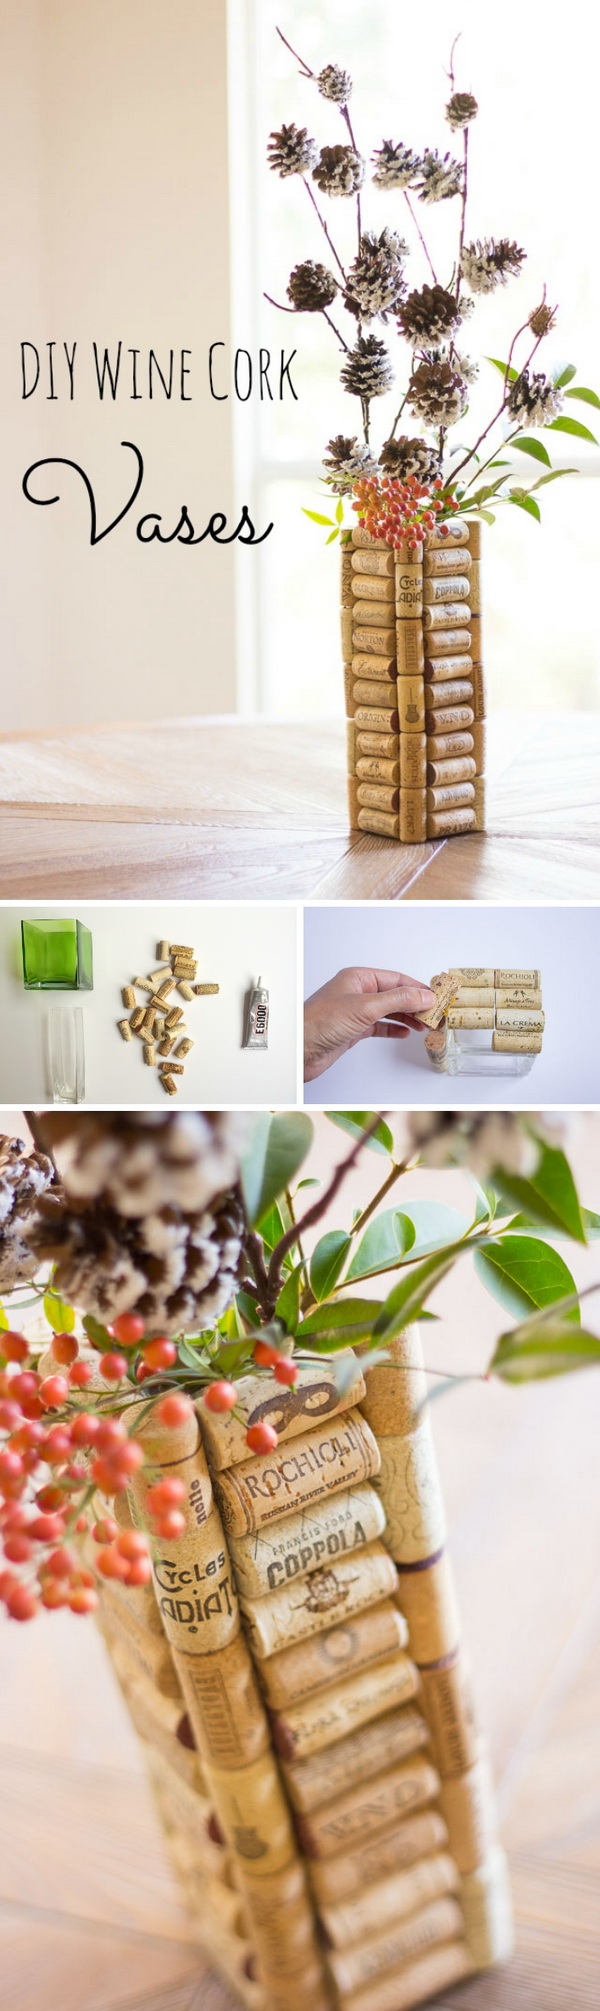 DIY Wine Cork Vases.